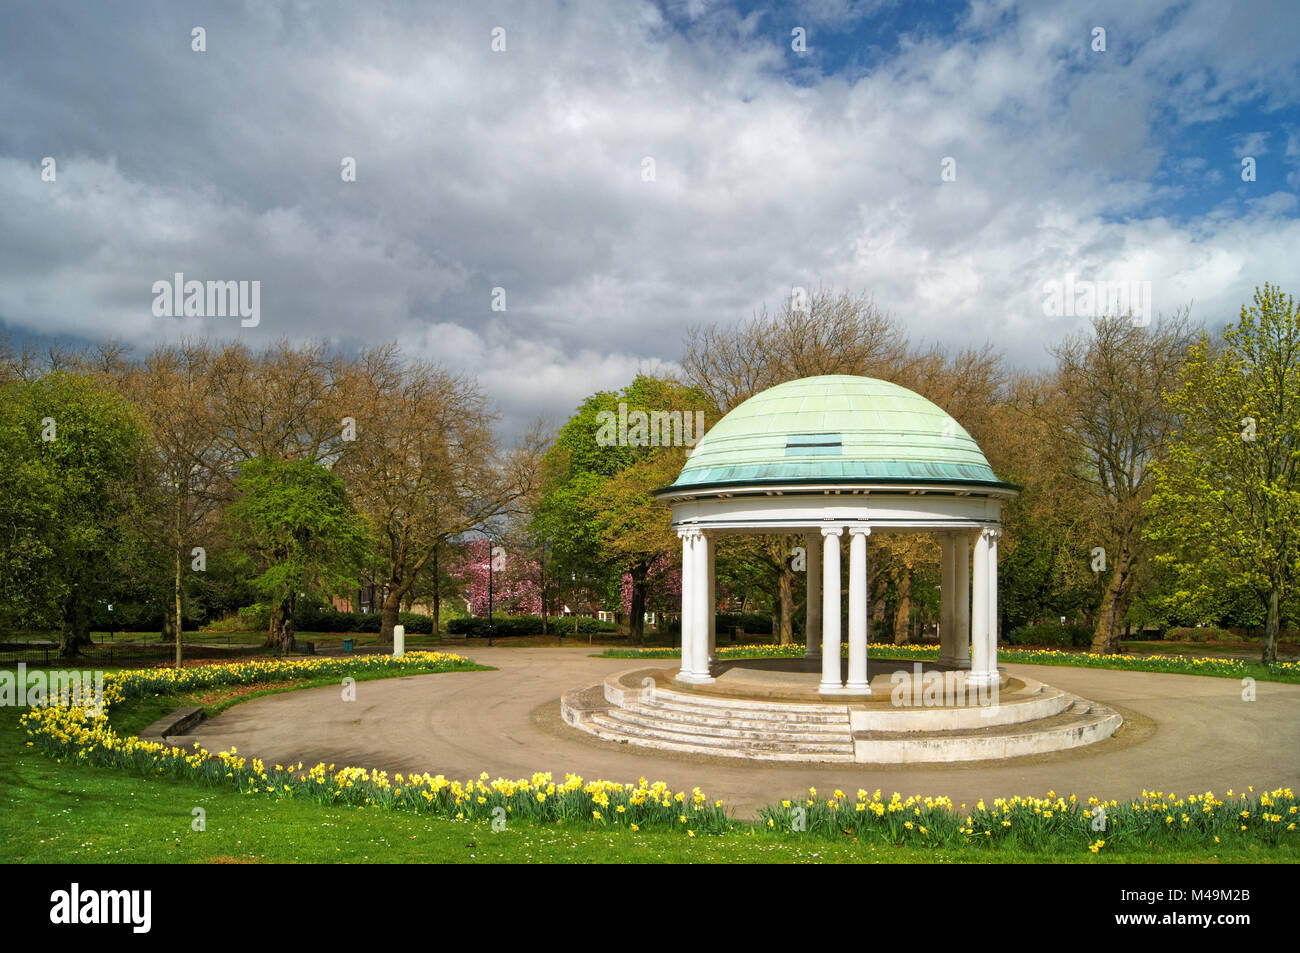 UK,South Yorkshire,Rotherham,Clifton Park Bandstand & Cherry Blossom - Stock Image